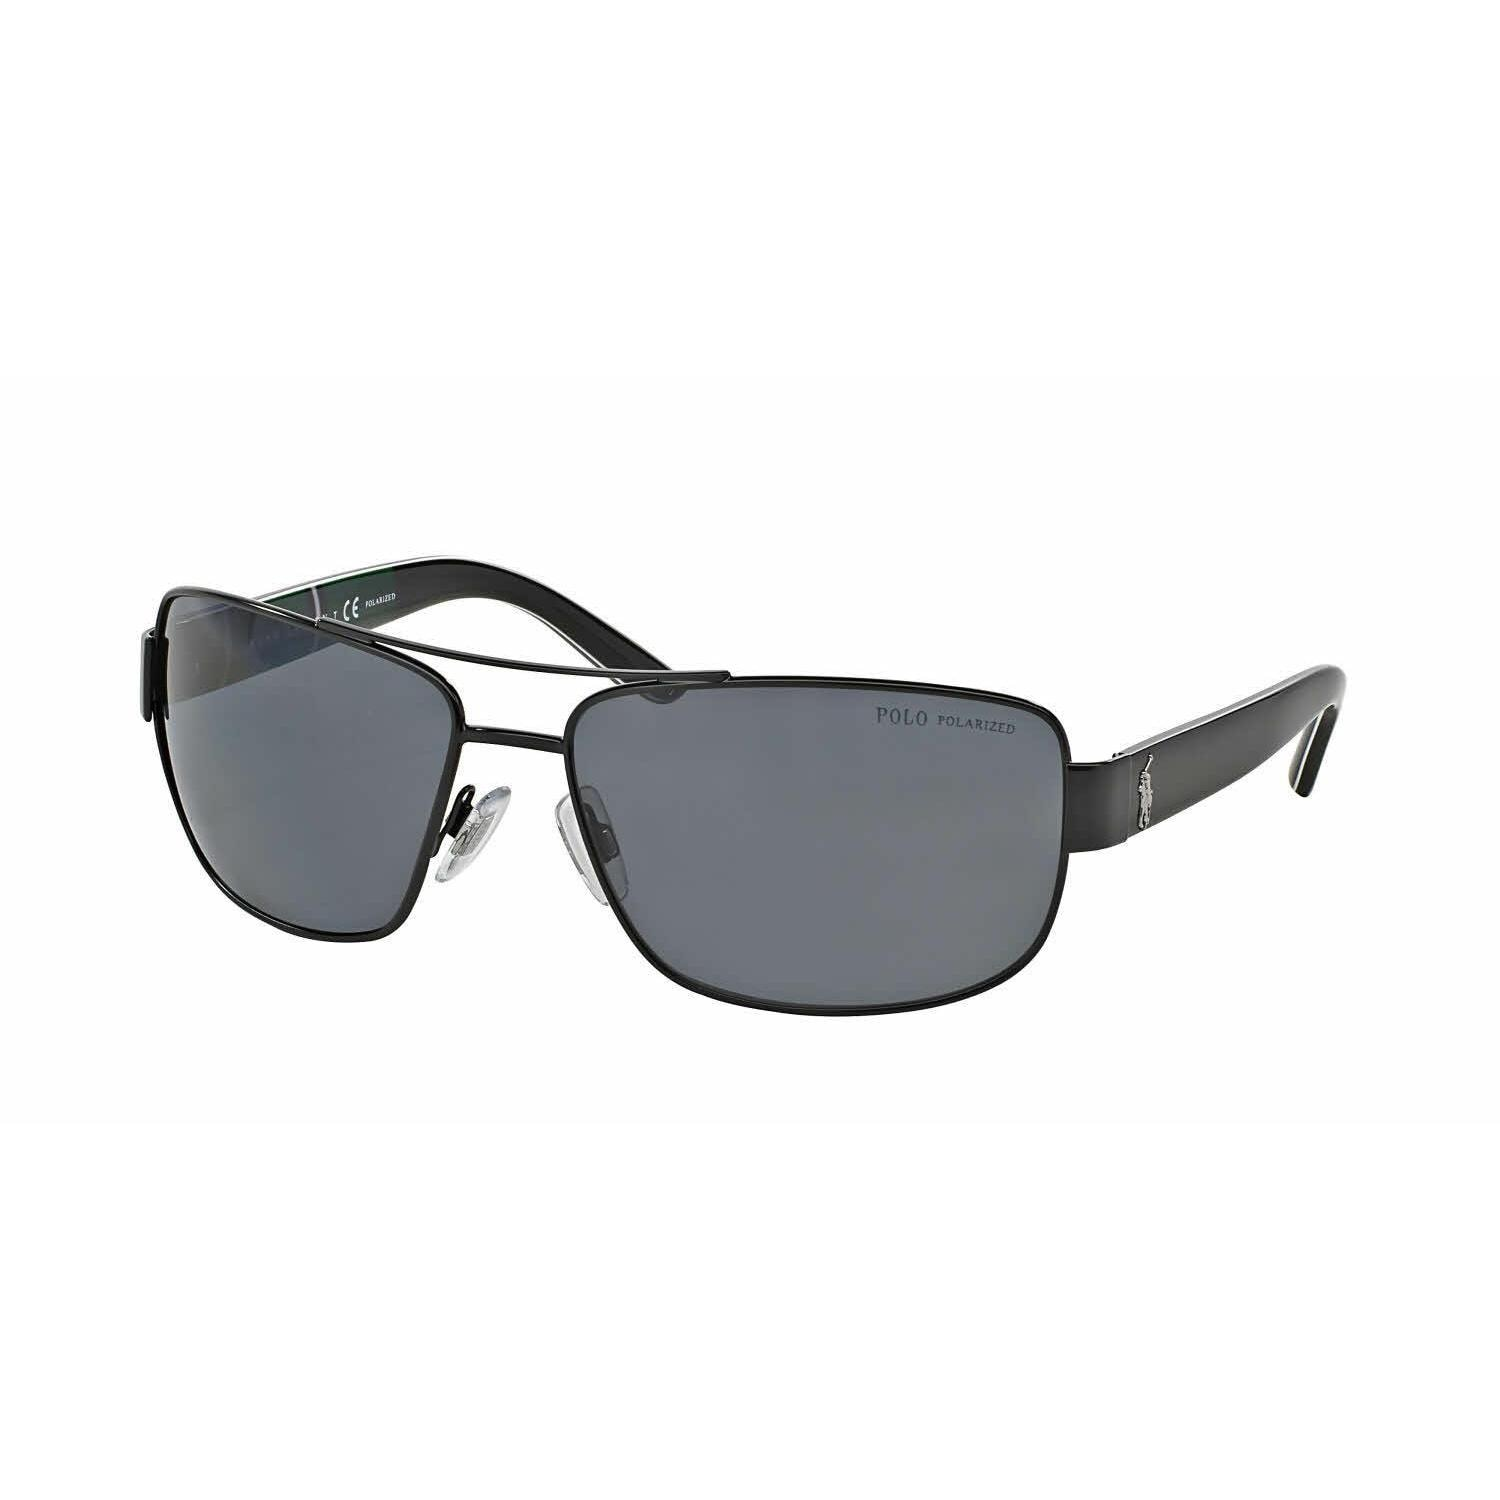 6539e2756f75 Shop Polo Mens PH3087 926781 Black Metal Rectangle Sunglasses - Grey - Free  Shipping Today - Overstock - 13471634